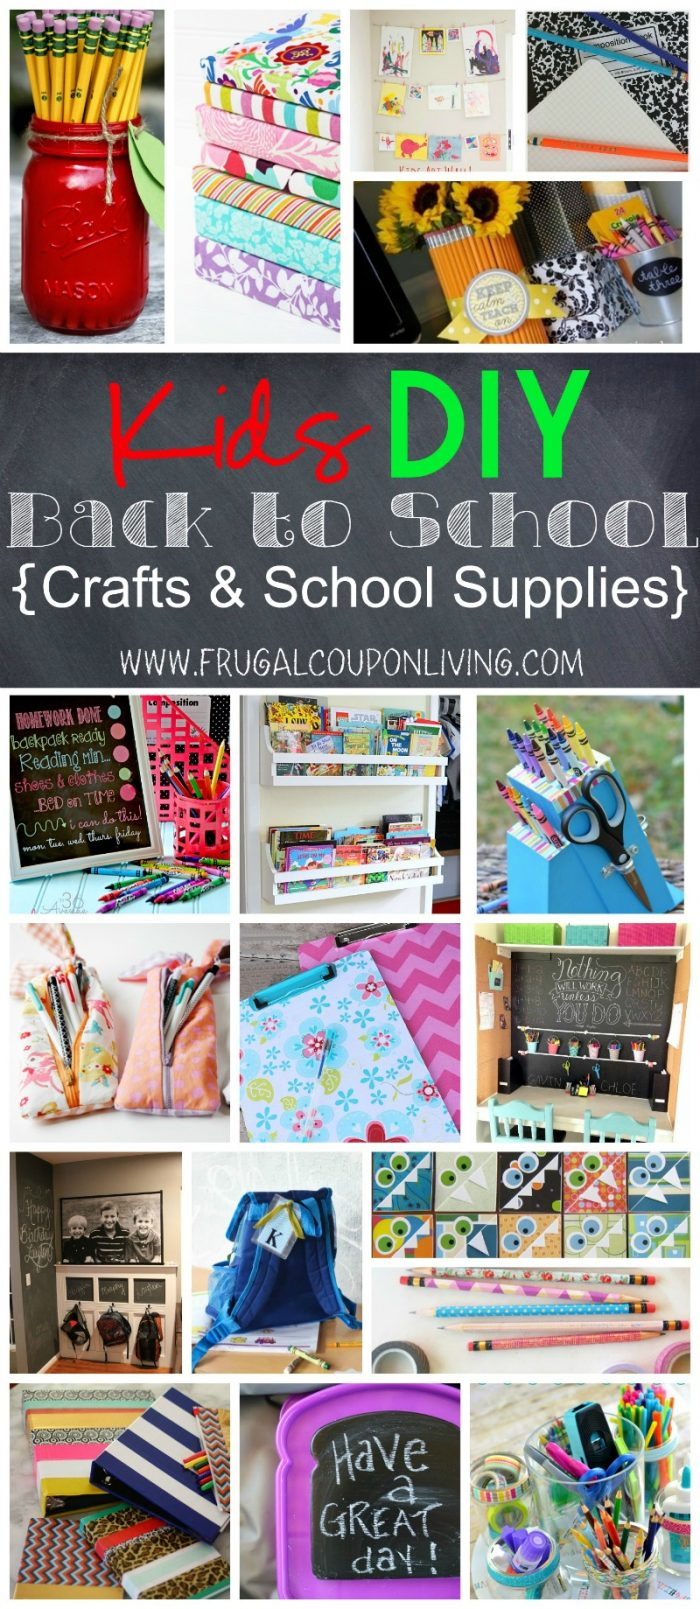 back-to-school-diy-Collage-frugal-coupon-living